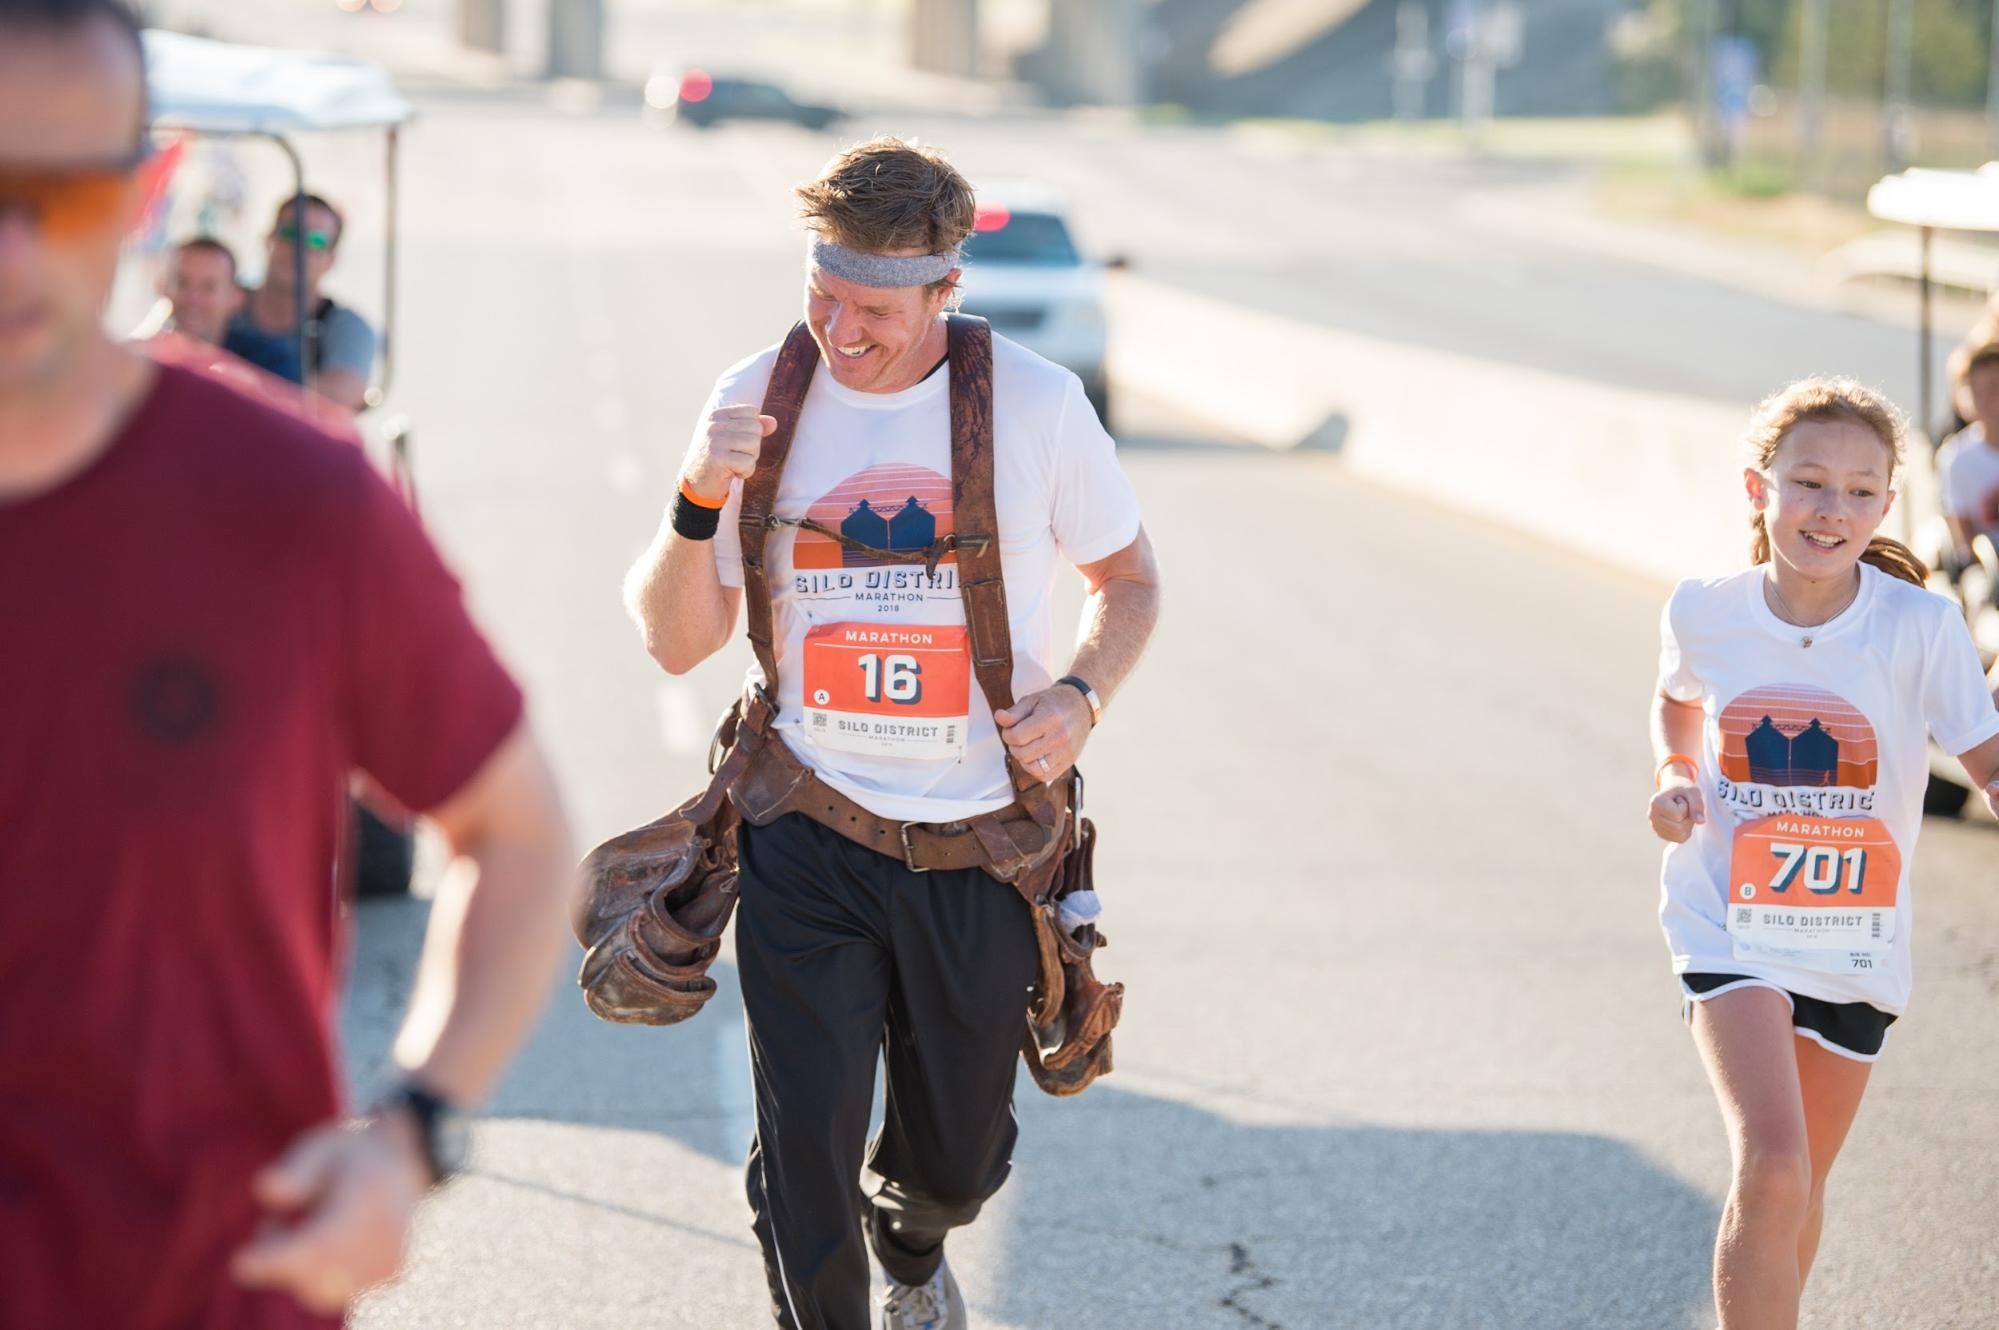 Chip Gaines Reveals the Incredible Reason He Wore His Toolbelt While Running His Marathon silo-district-marathon-chip-gaines-running-with-daughter-toolbelt-waco